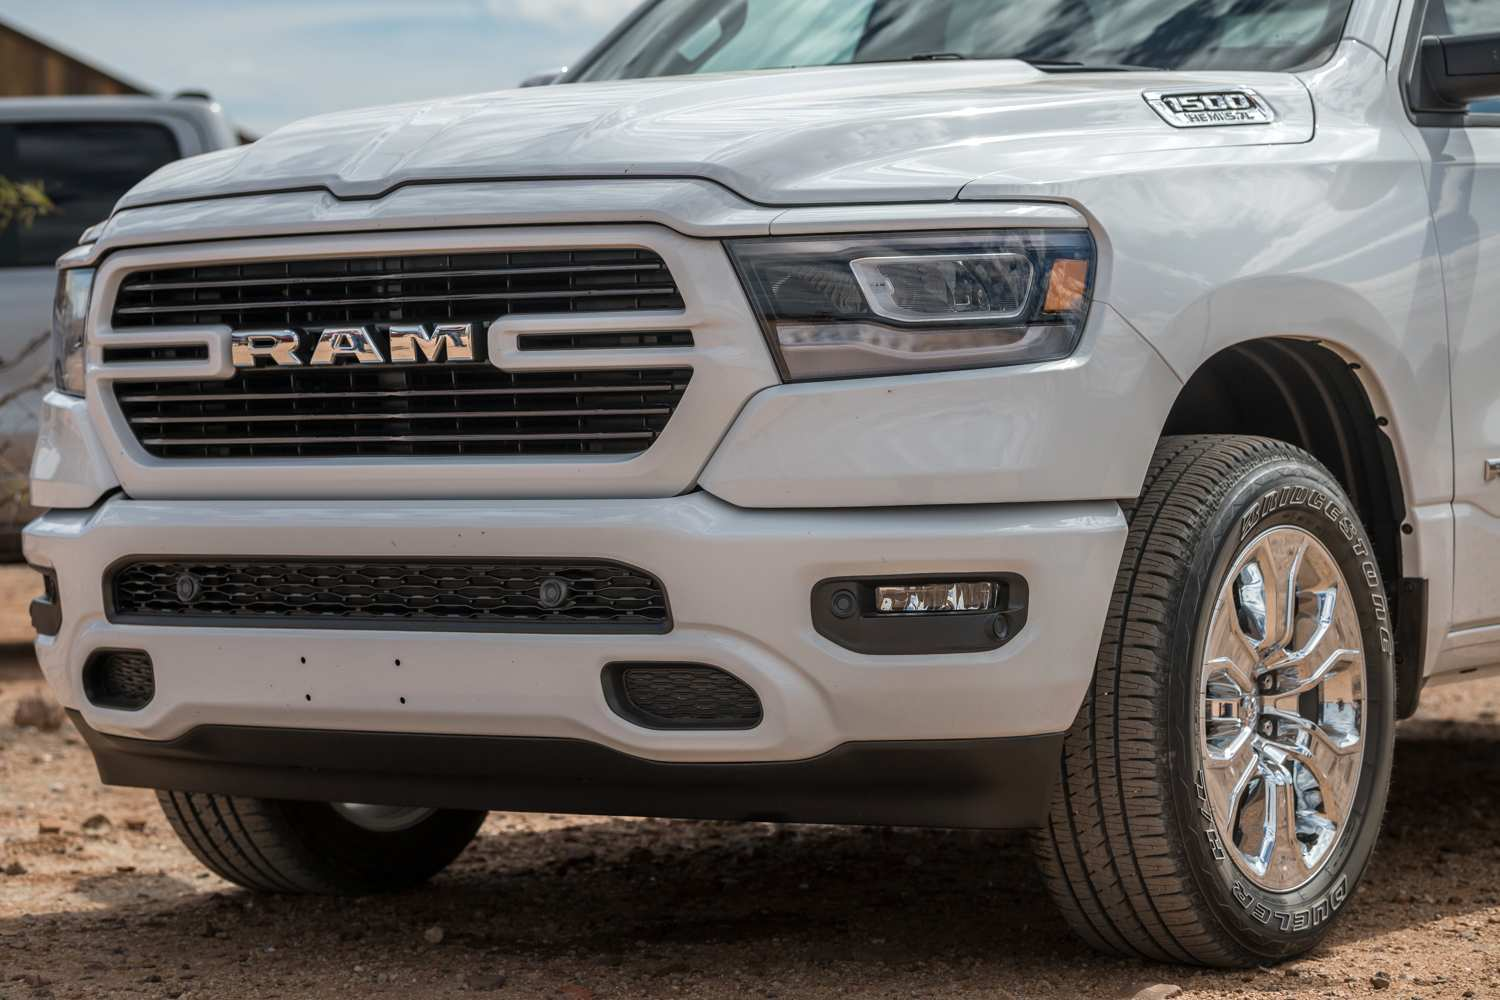 84 Concept of 2019 Dodge Ram 1500 Engine Release Date with 2019 Dodge Ram 1500 Engine